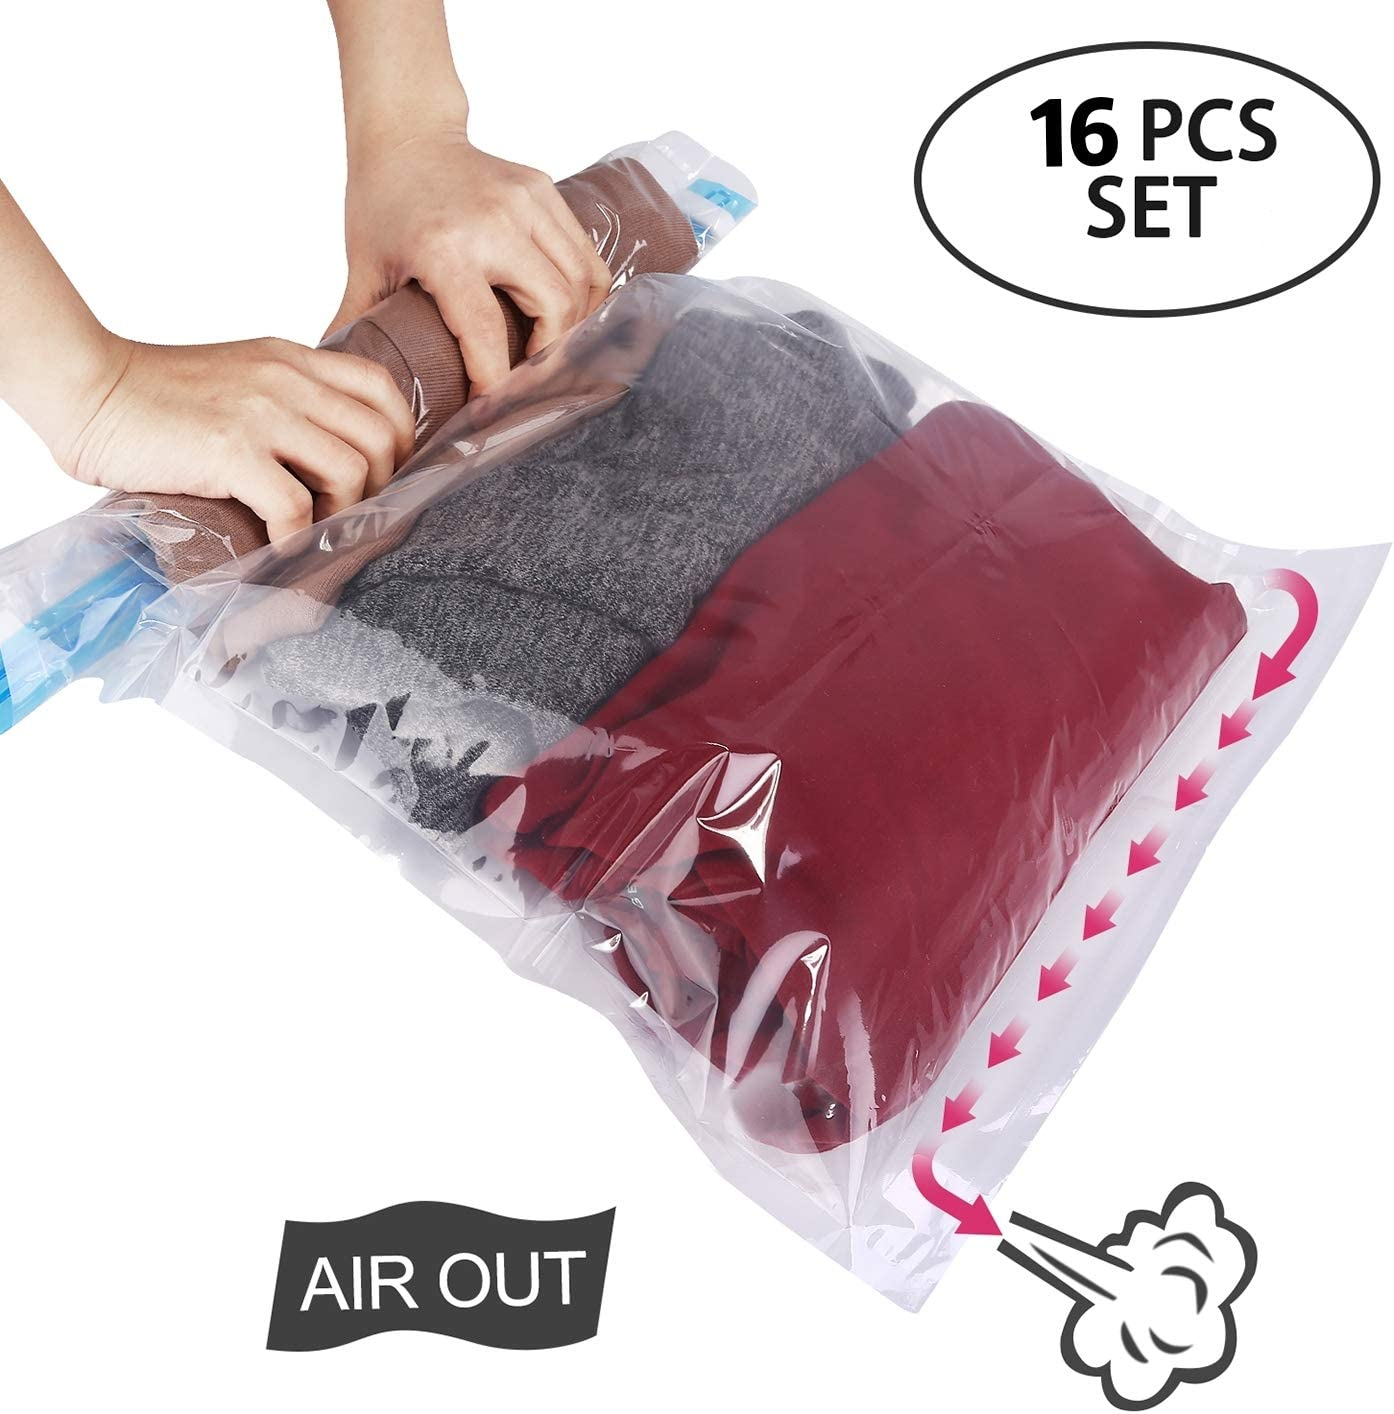 HOMEIDEAS 16 Pack - 24x16 inch - Travel Space Saver Bags, Roll Up Storage Bags, Compression Bags for Travel and Storage - No Vacuum or Pump Needed